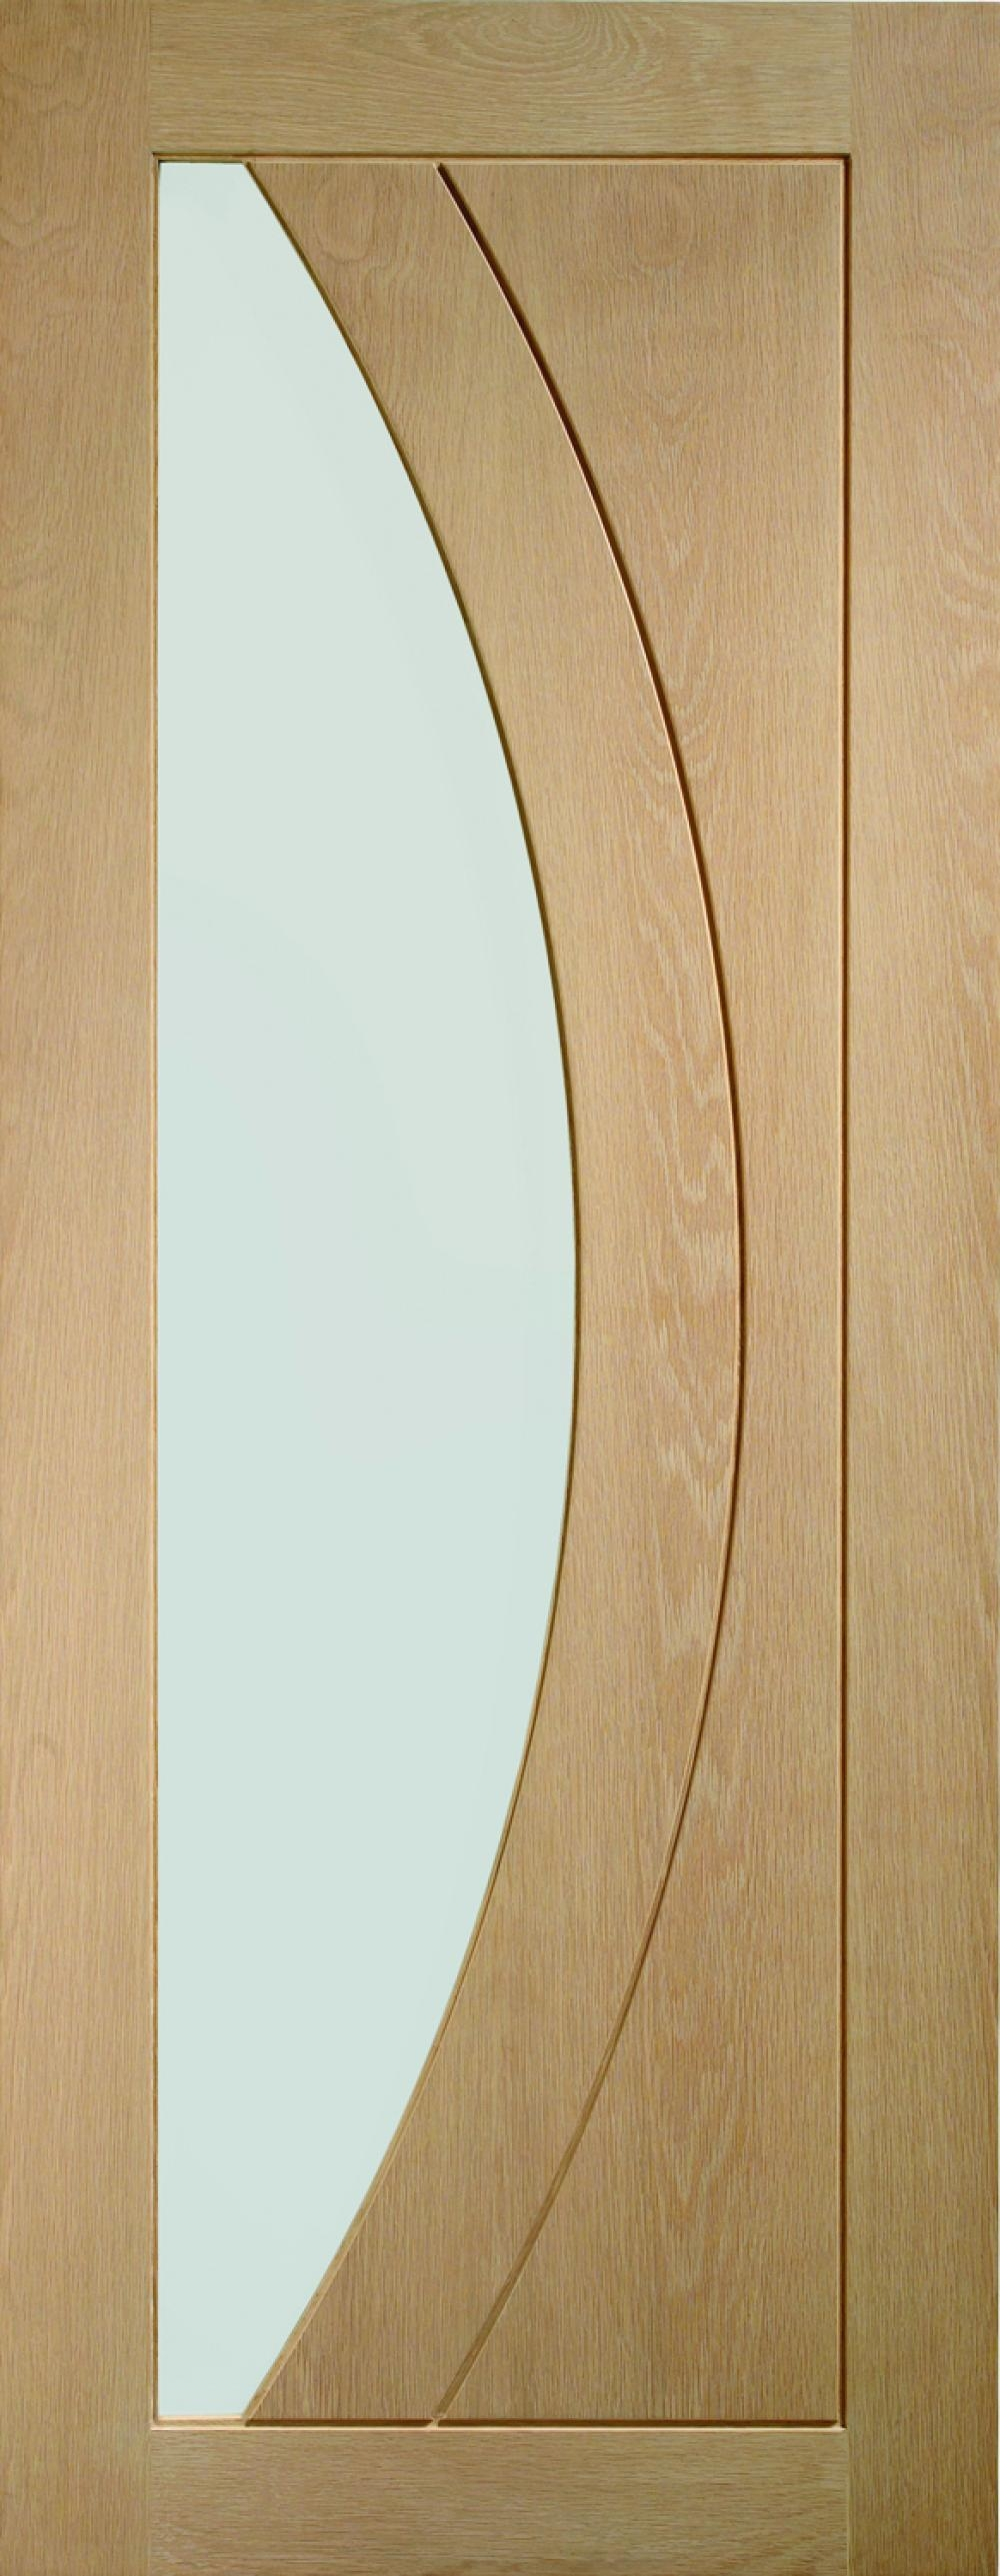 Salerno Oak - Clear Glass:  Image